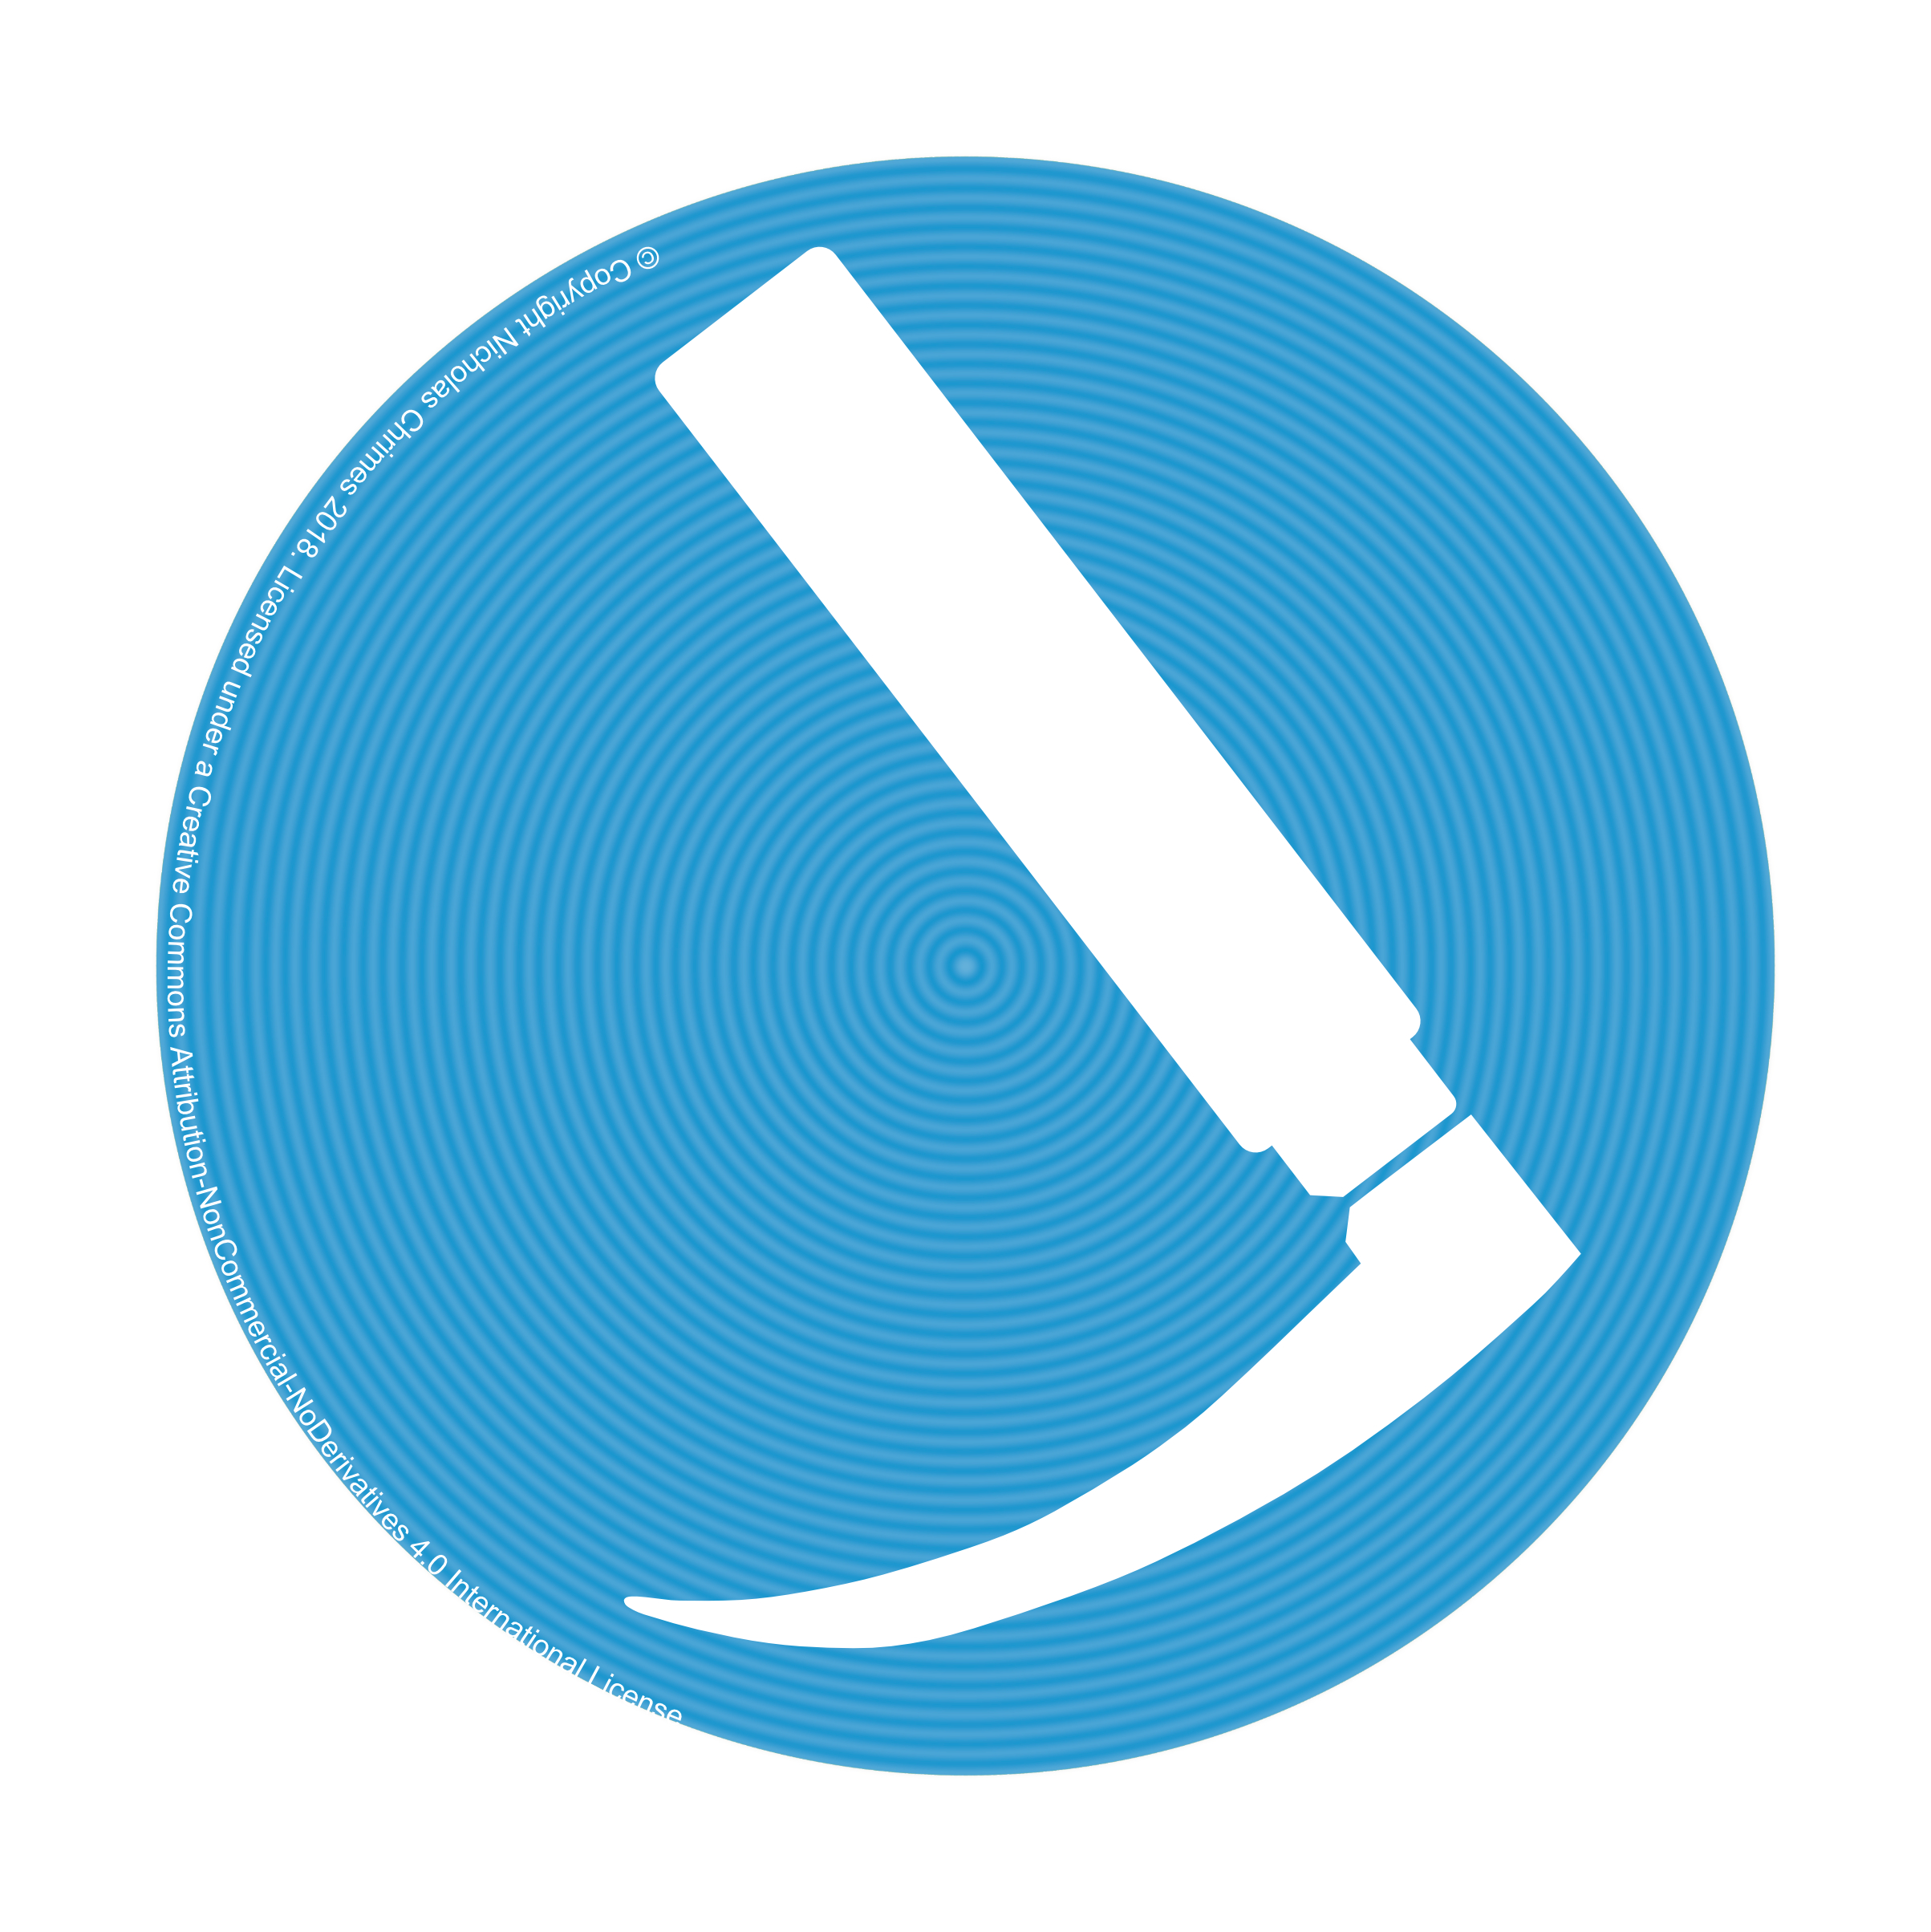 Direct Laryngoscopy/Laryngoscope Icon